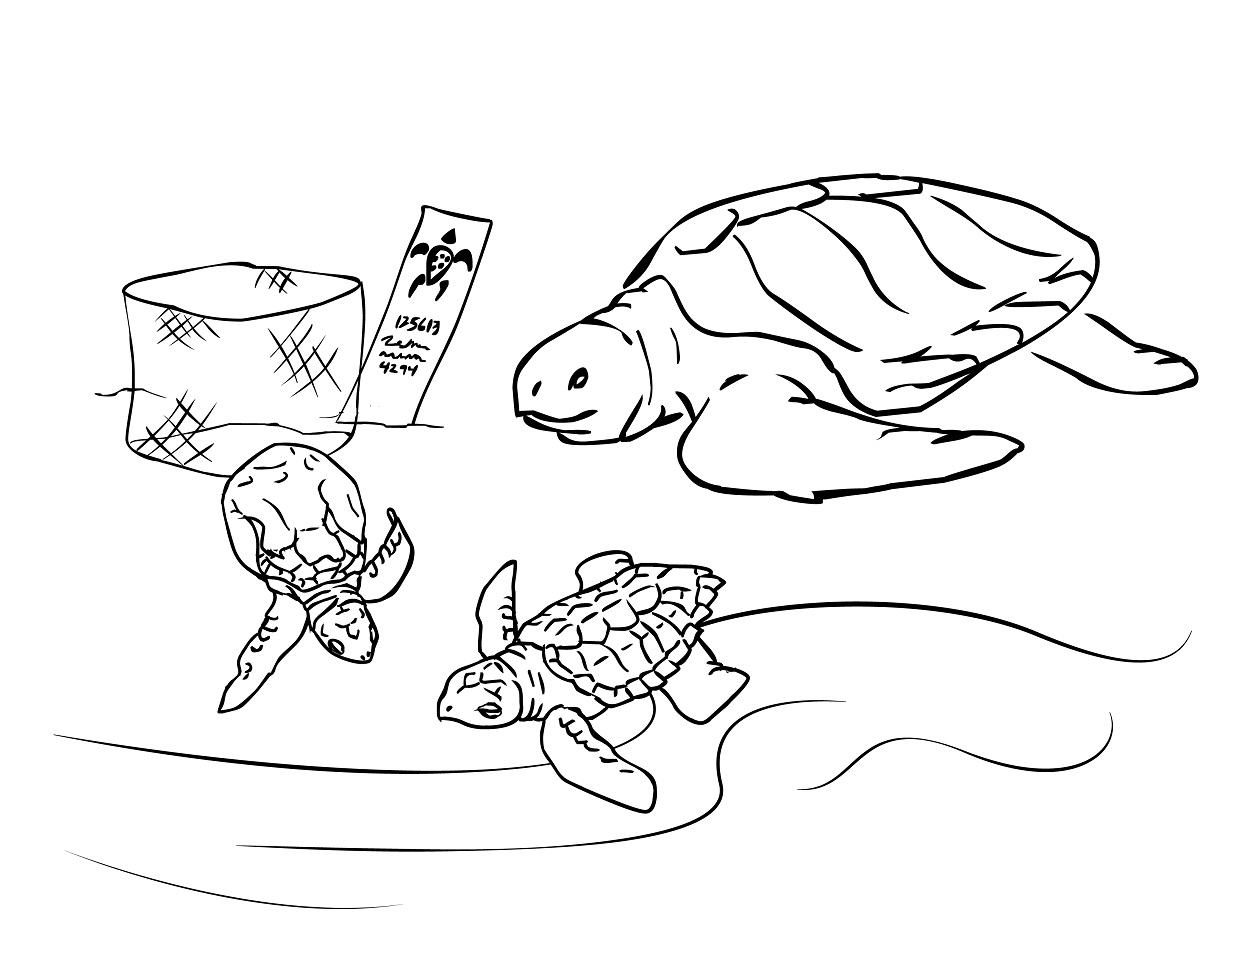 ocean coloring pages for kids printable - photo #25